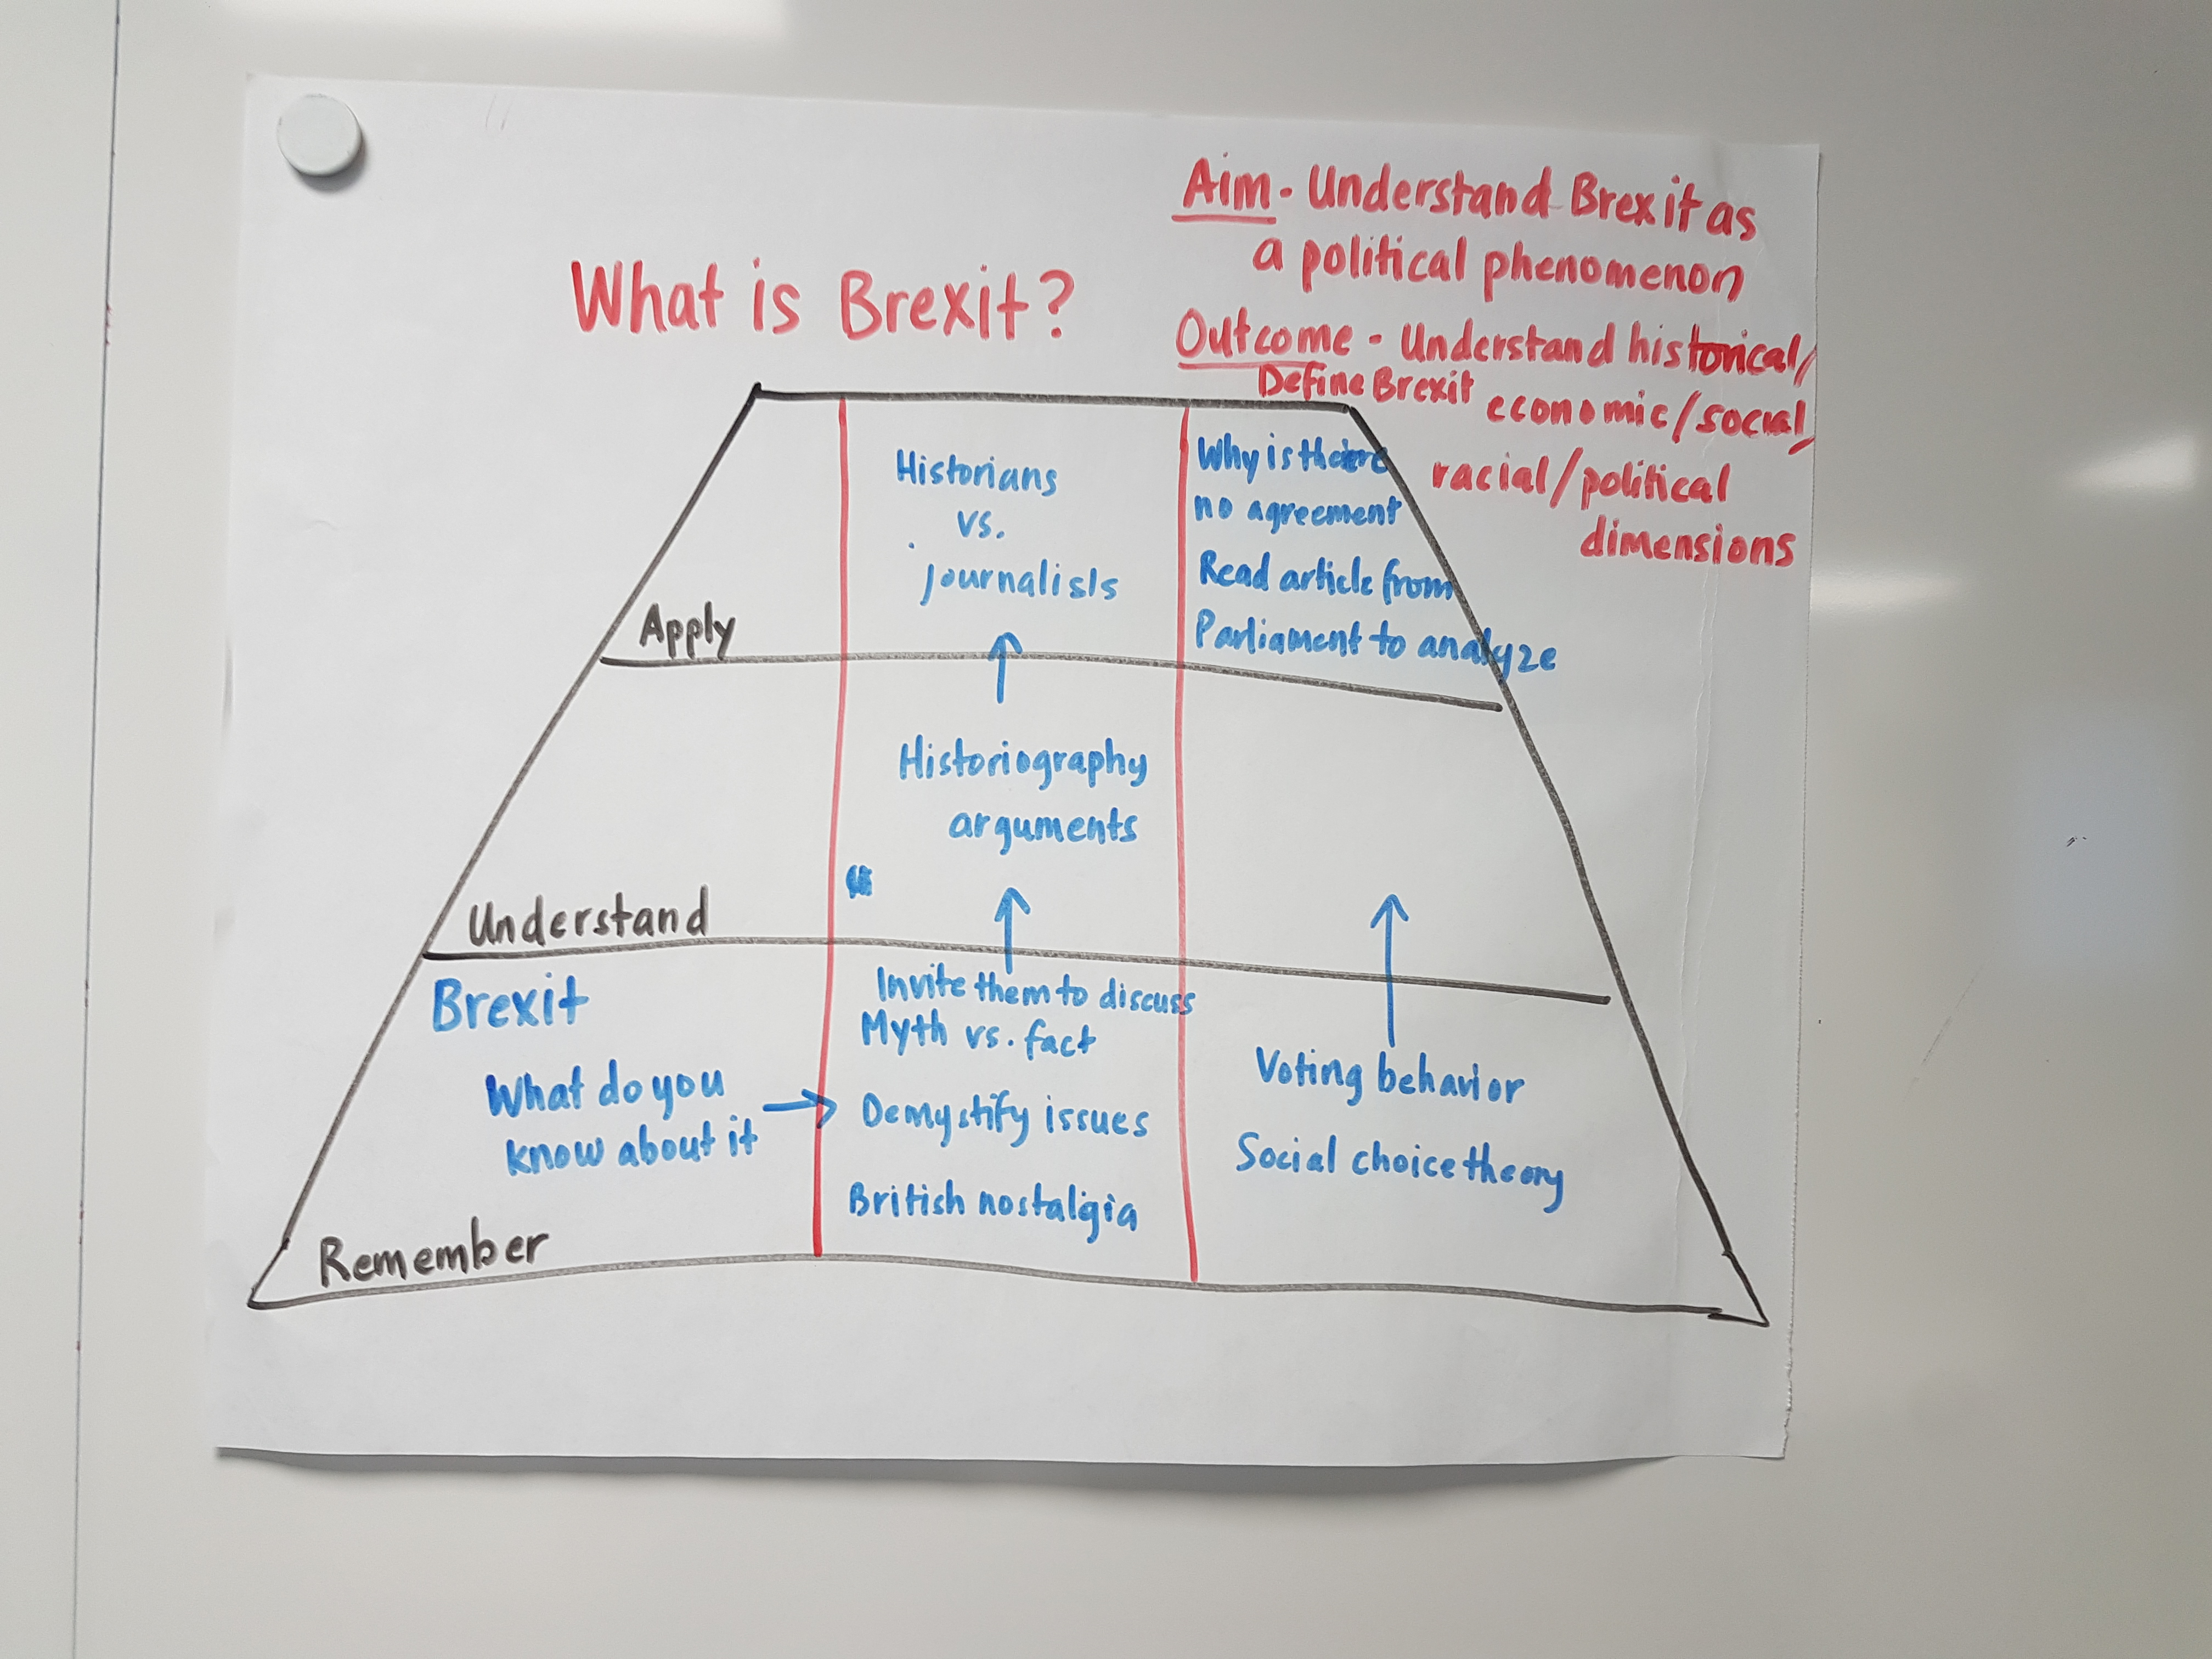 A diagrammatic/tabular representation of a lesson plan on Brexit